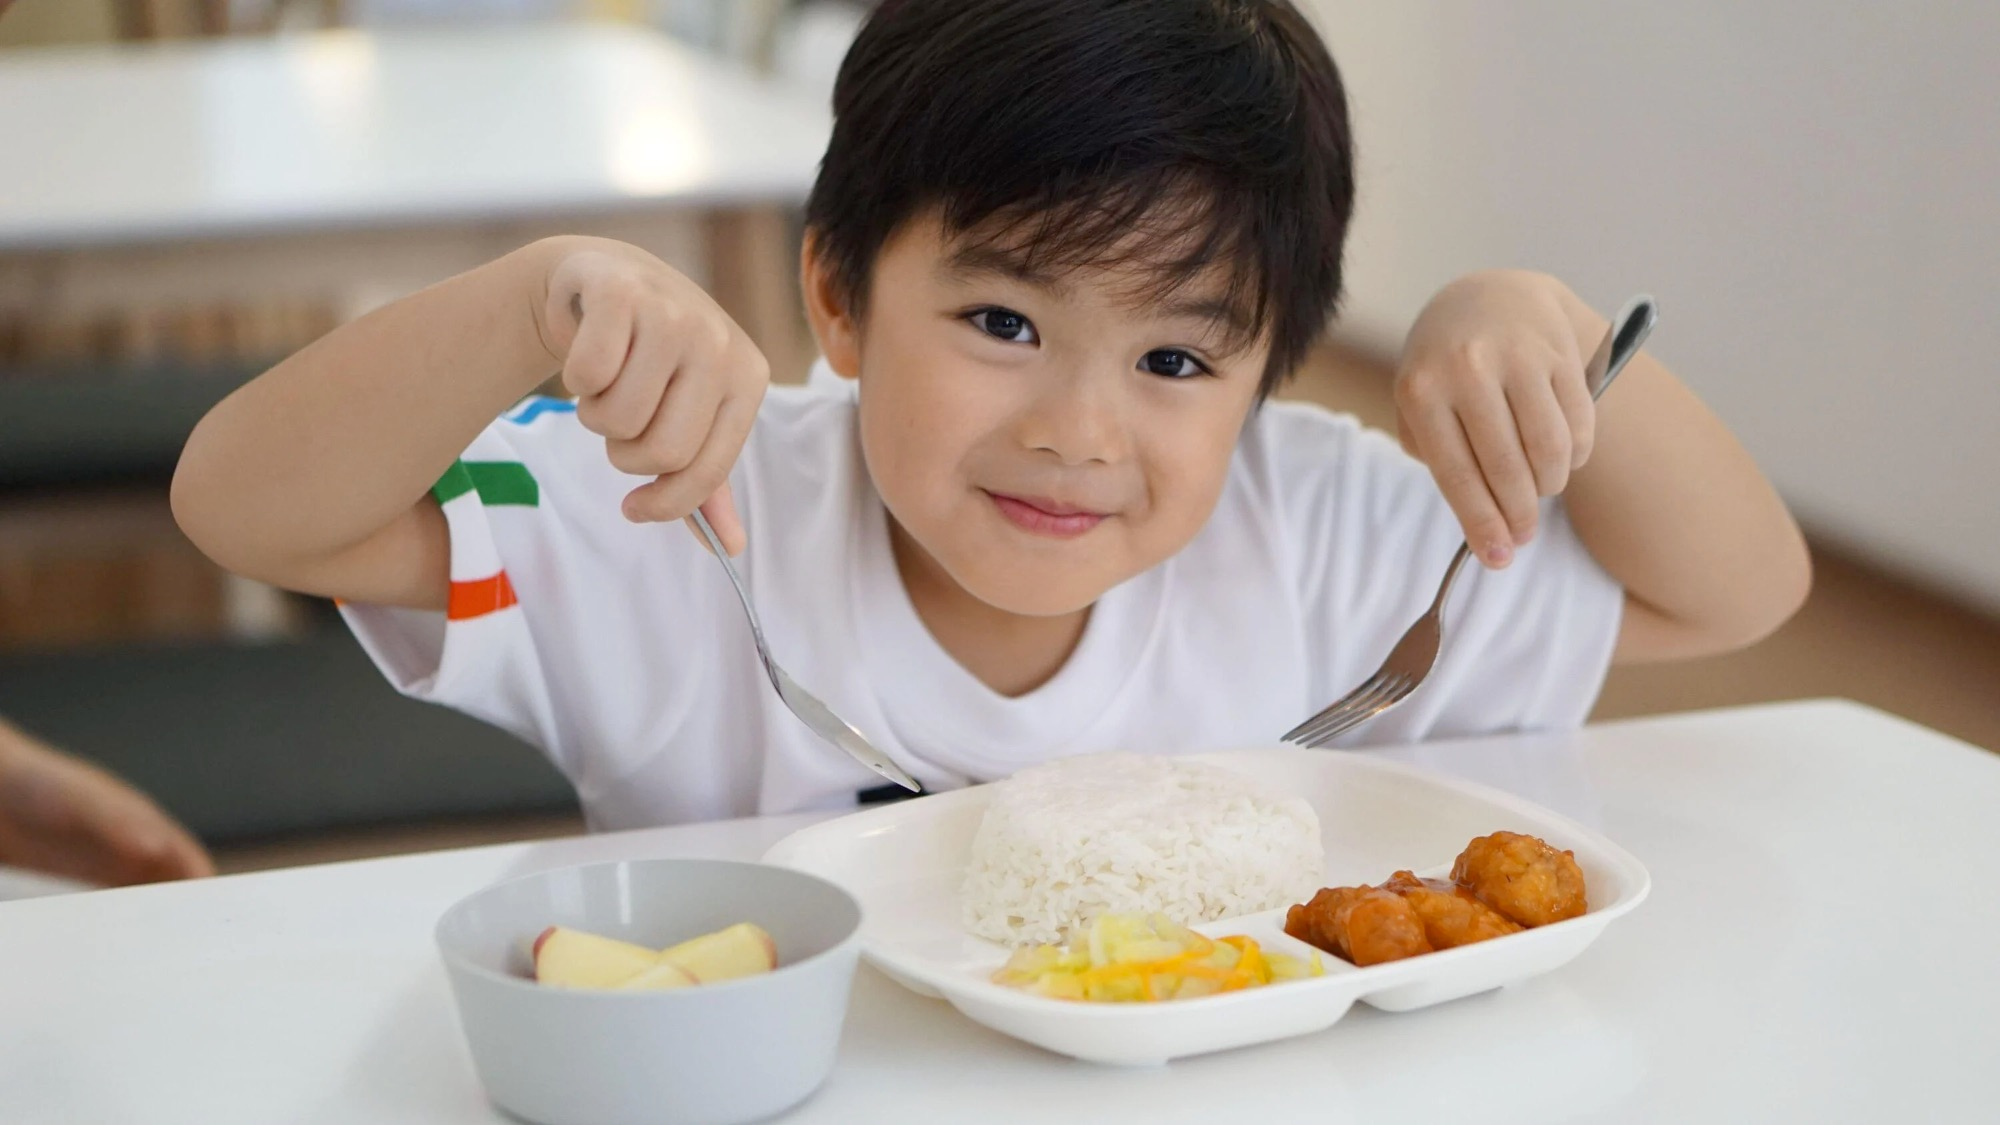 warm meals, student care, tasty well balanced meals, eat learn live